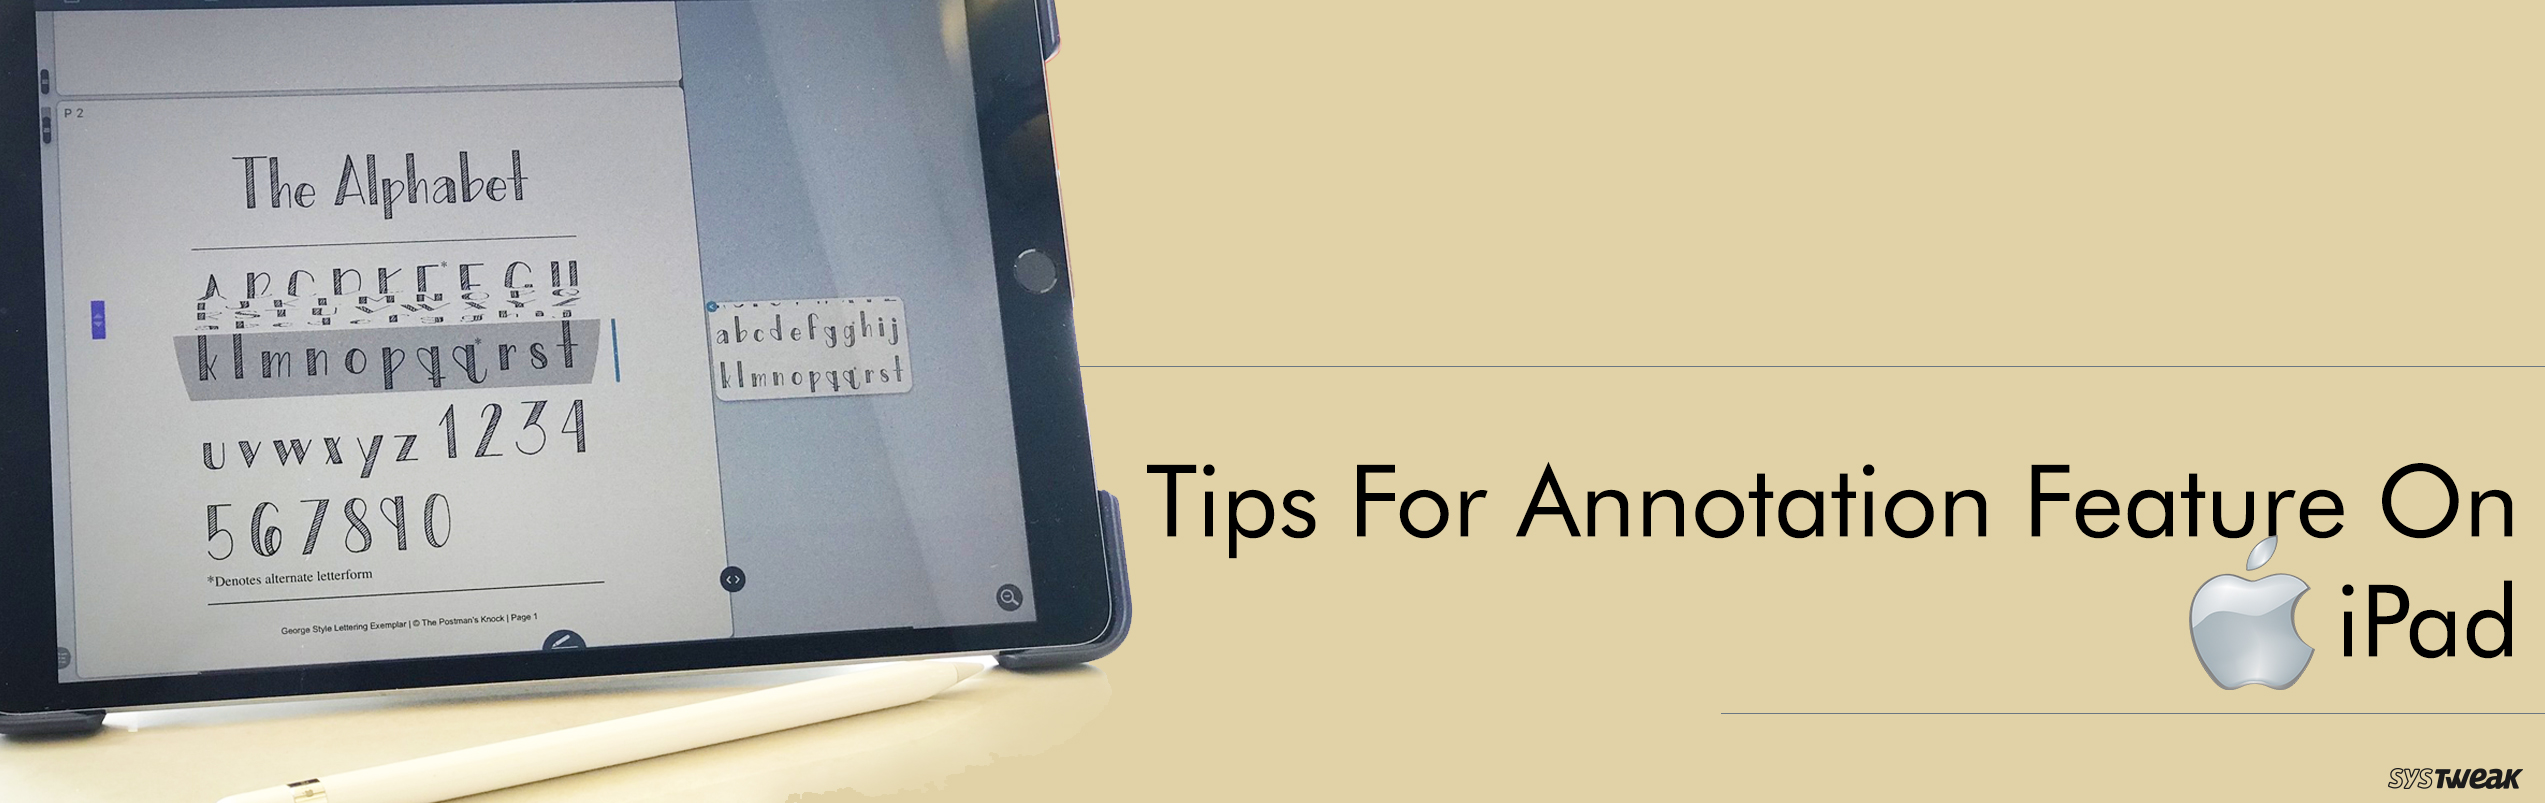 Do You Know About The Smart Annotation On iPad?